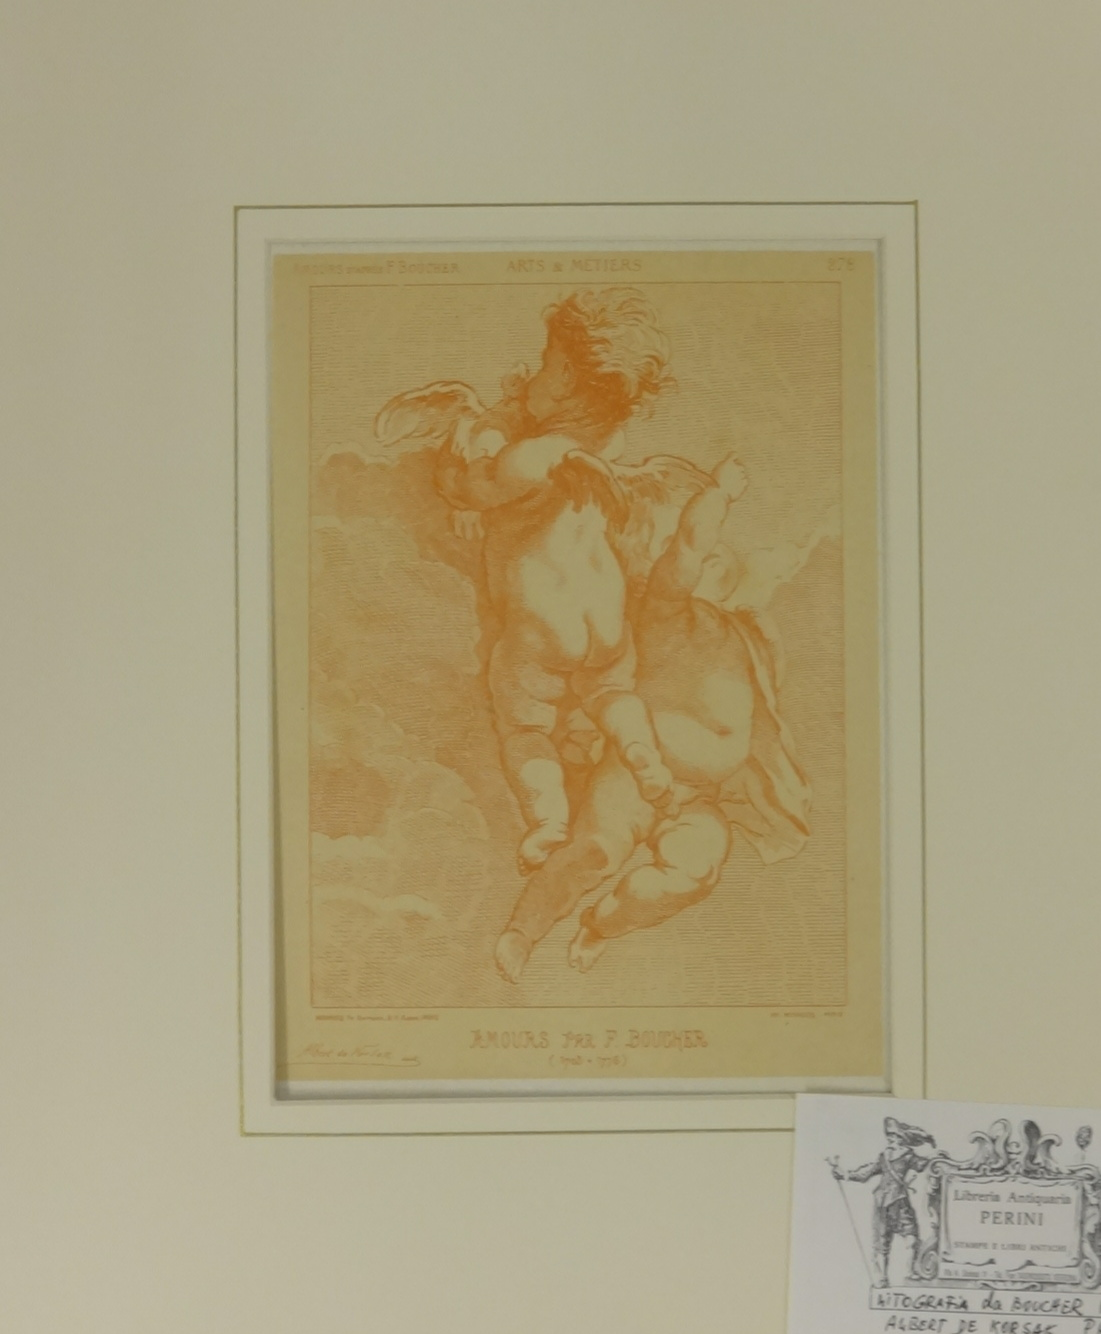 Lot 52 - W.R.Flint, unsigned limited edition print 'Cecilia & Joanna', from an edition of 650, mounted,